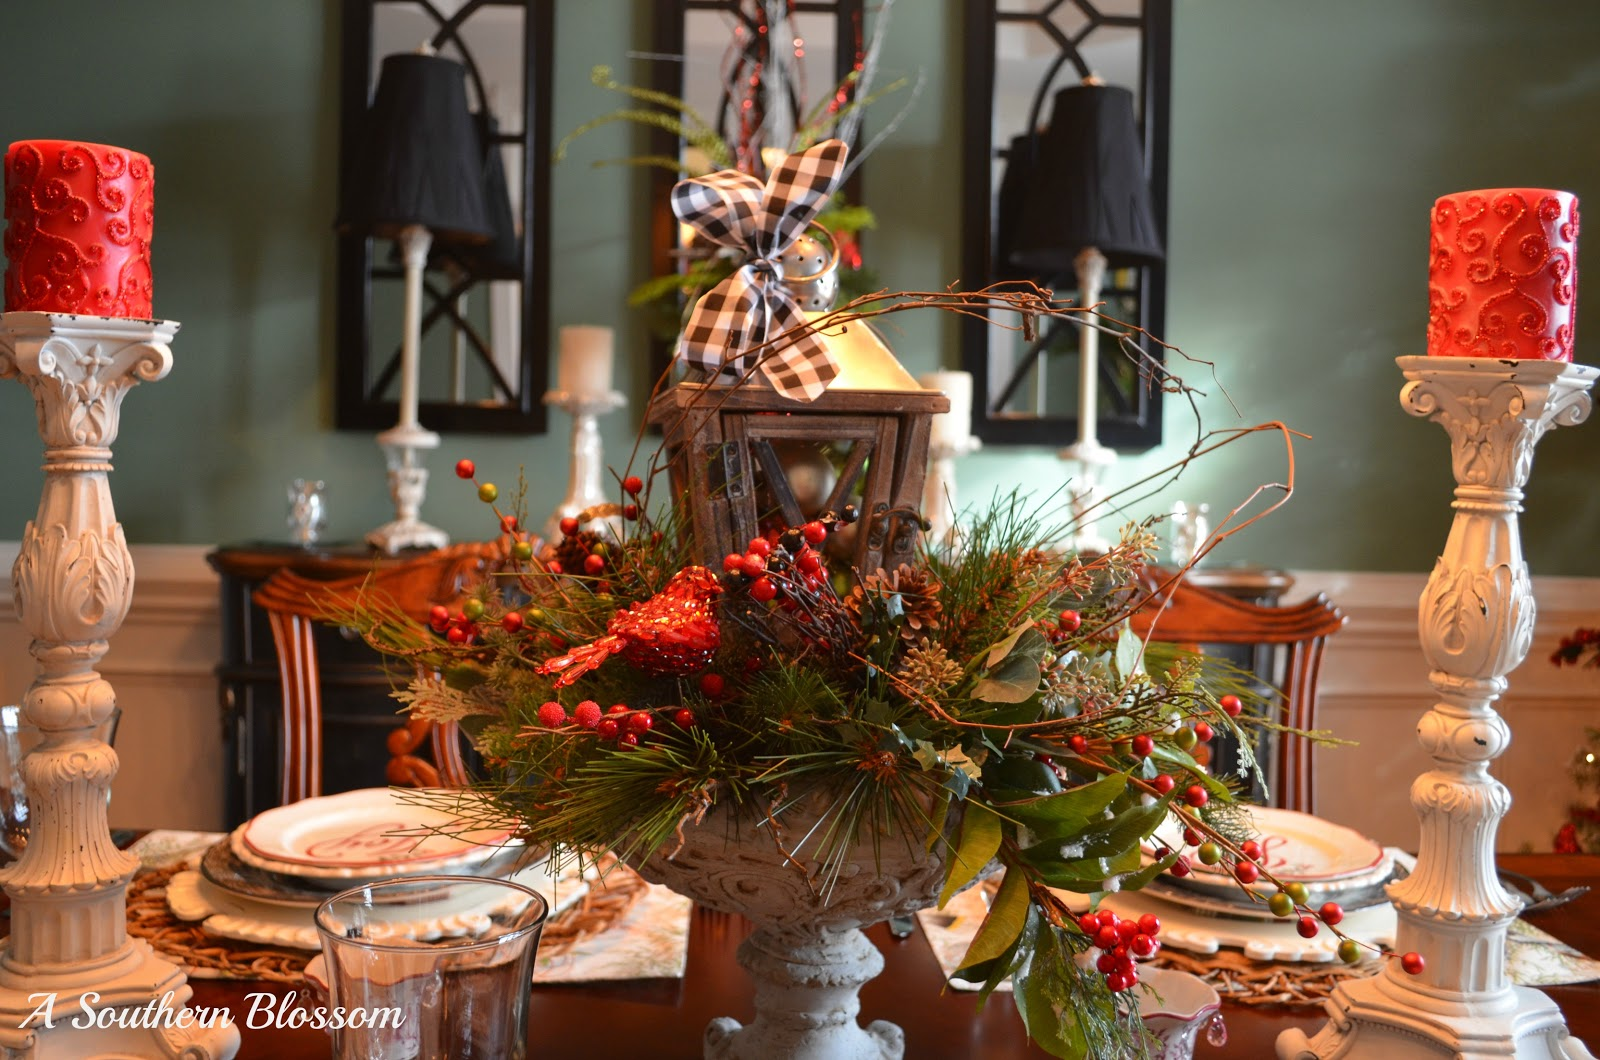 A Southern Blossom Tablescapes